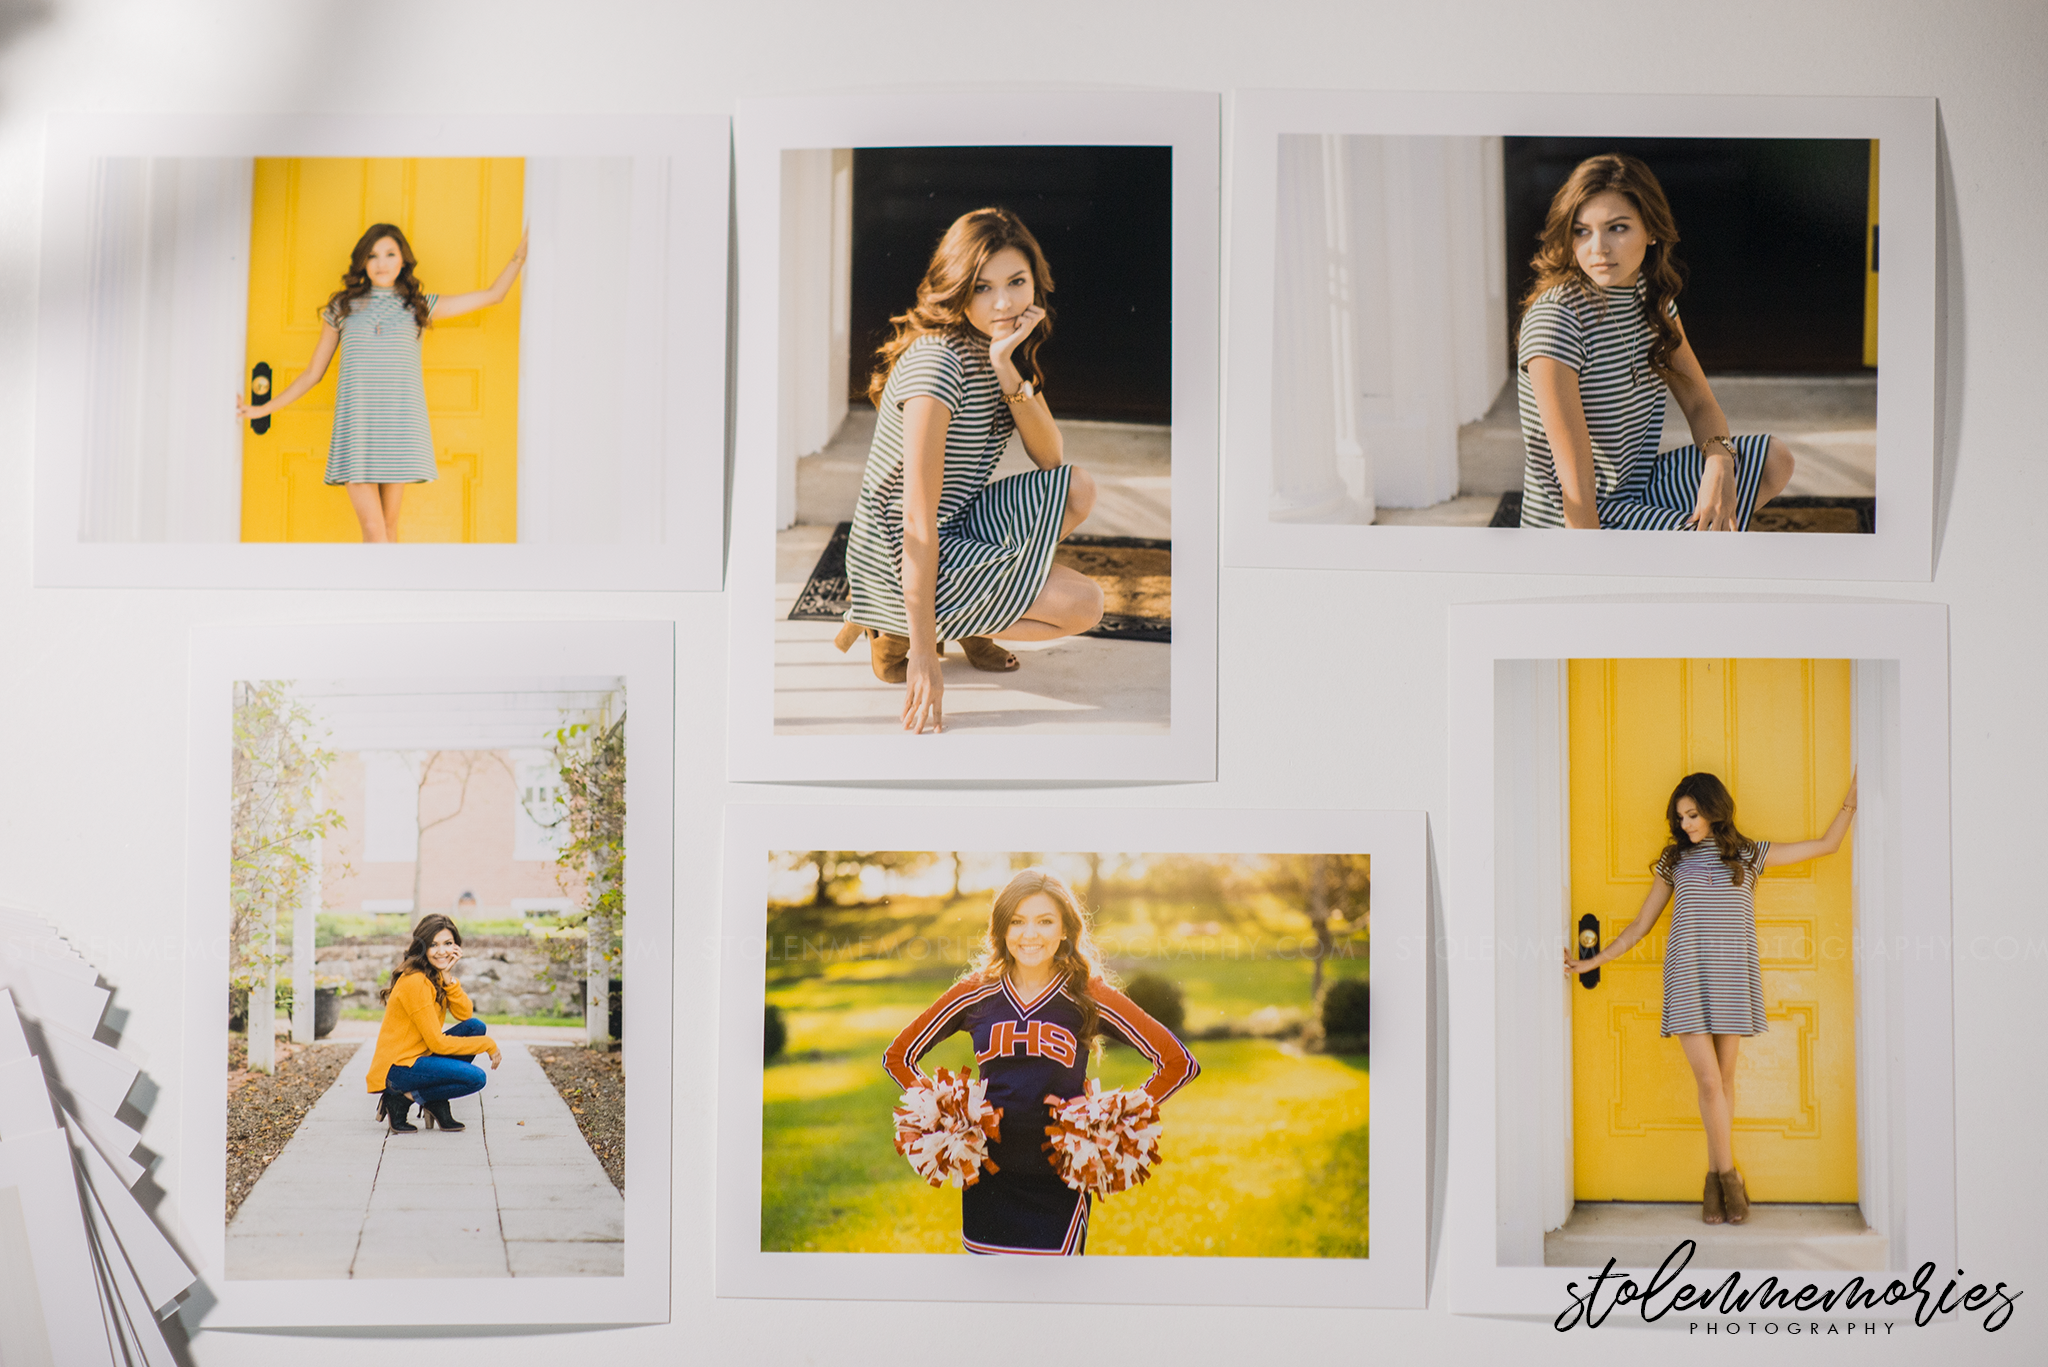 state-college-pa-senior-photographer-new-product-editorial-prints-05